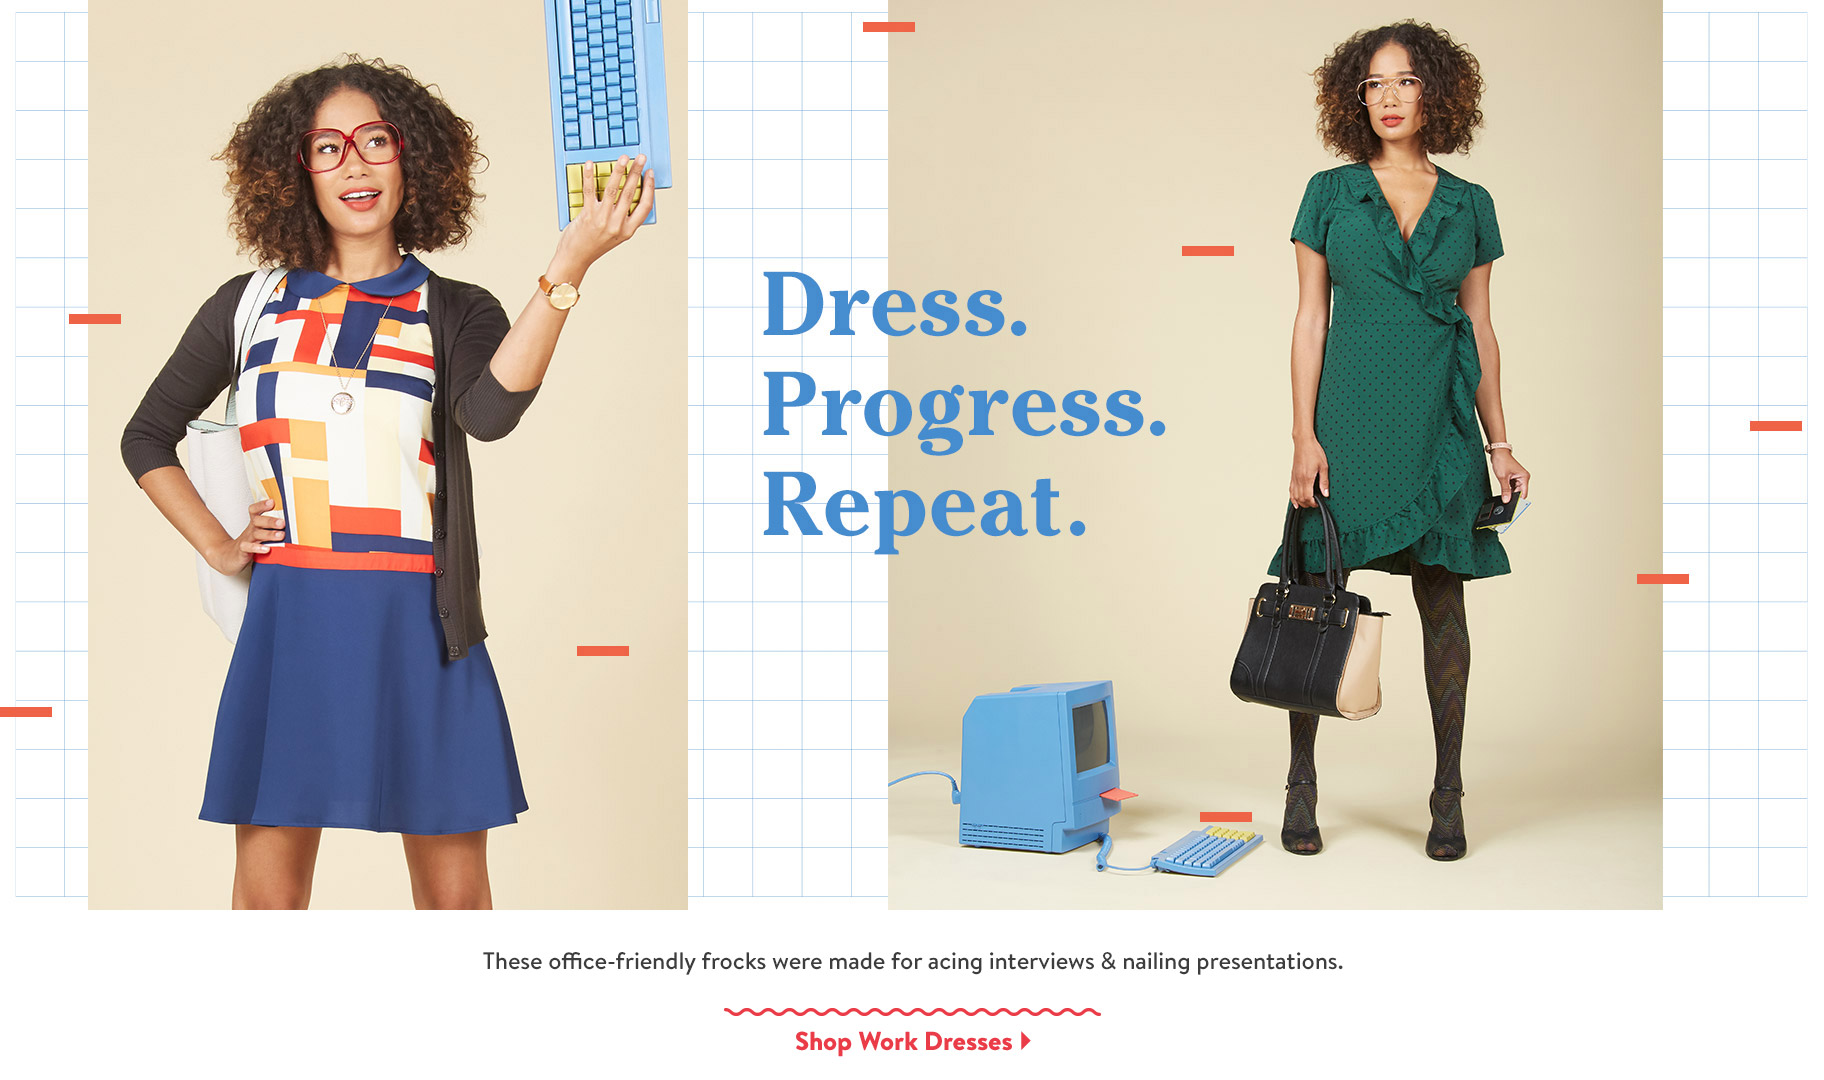 Dress. Progress. Repeat. These office-friendly frocks were made for acing interviews & nailing presentations. Shop Work Dresses.